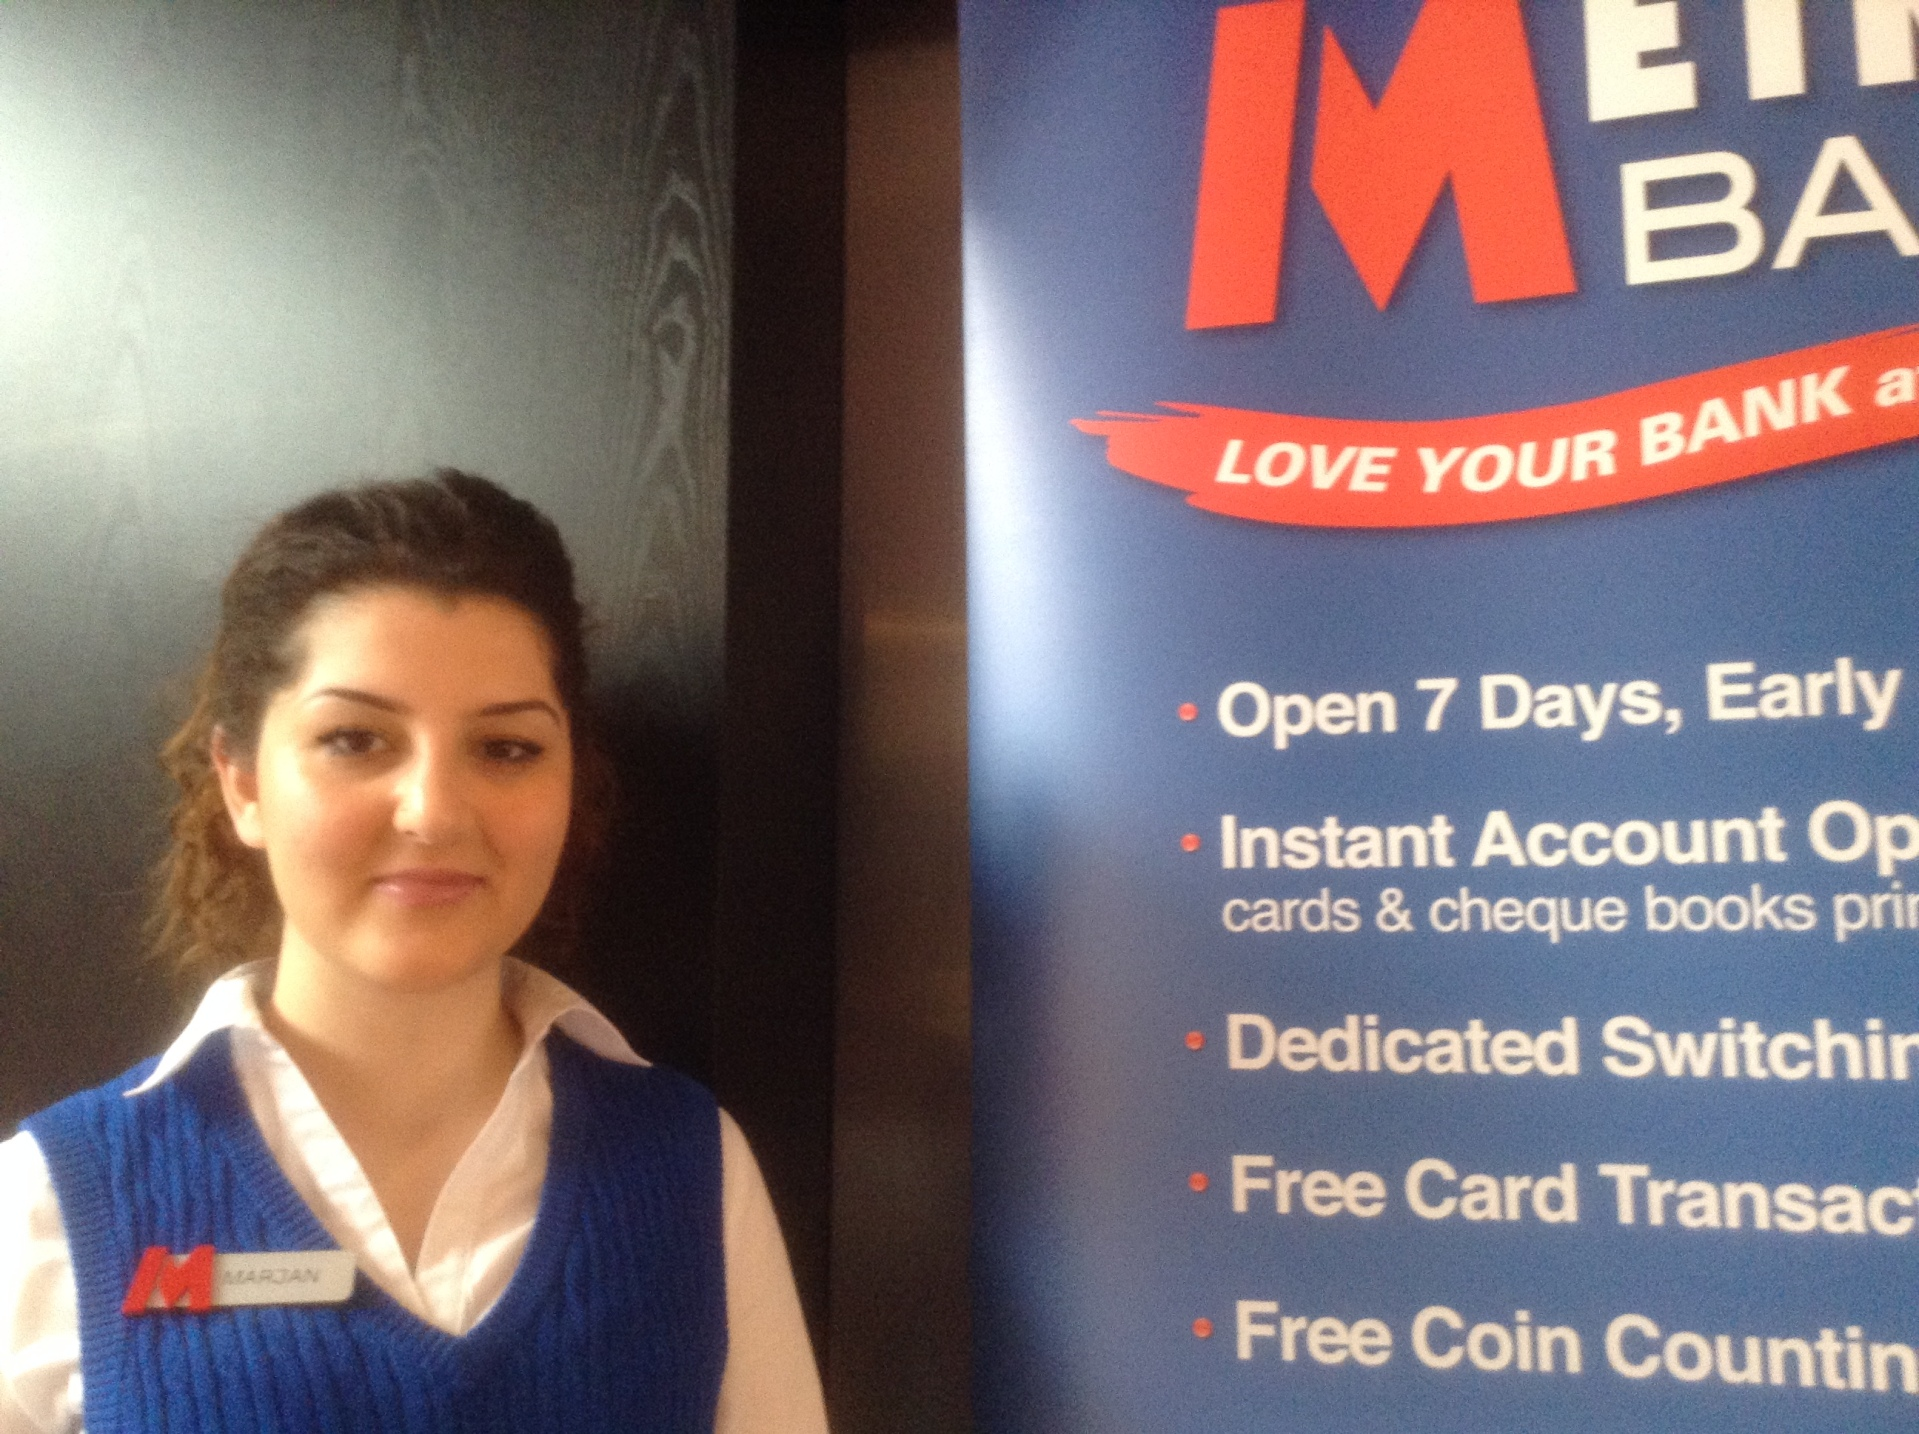 slow business networking metro bank mj